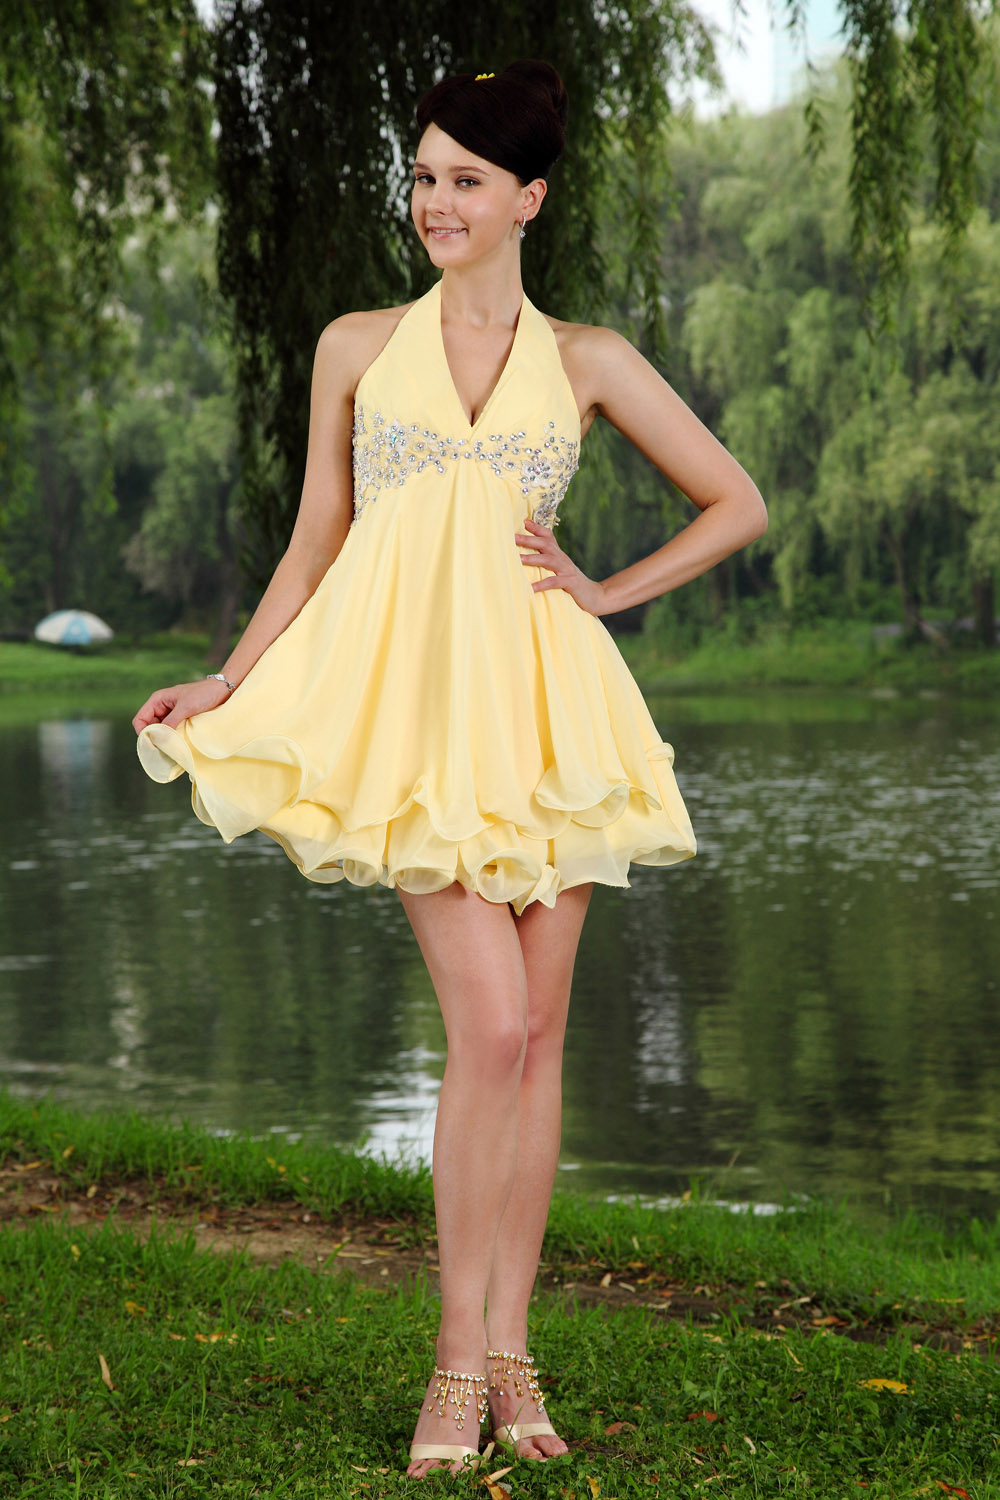 A-line Sheath/Column V-neck Knee-length Chiffon Holiday Dress